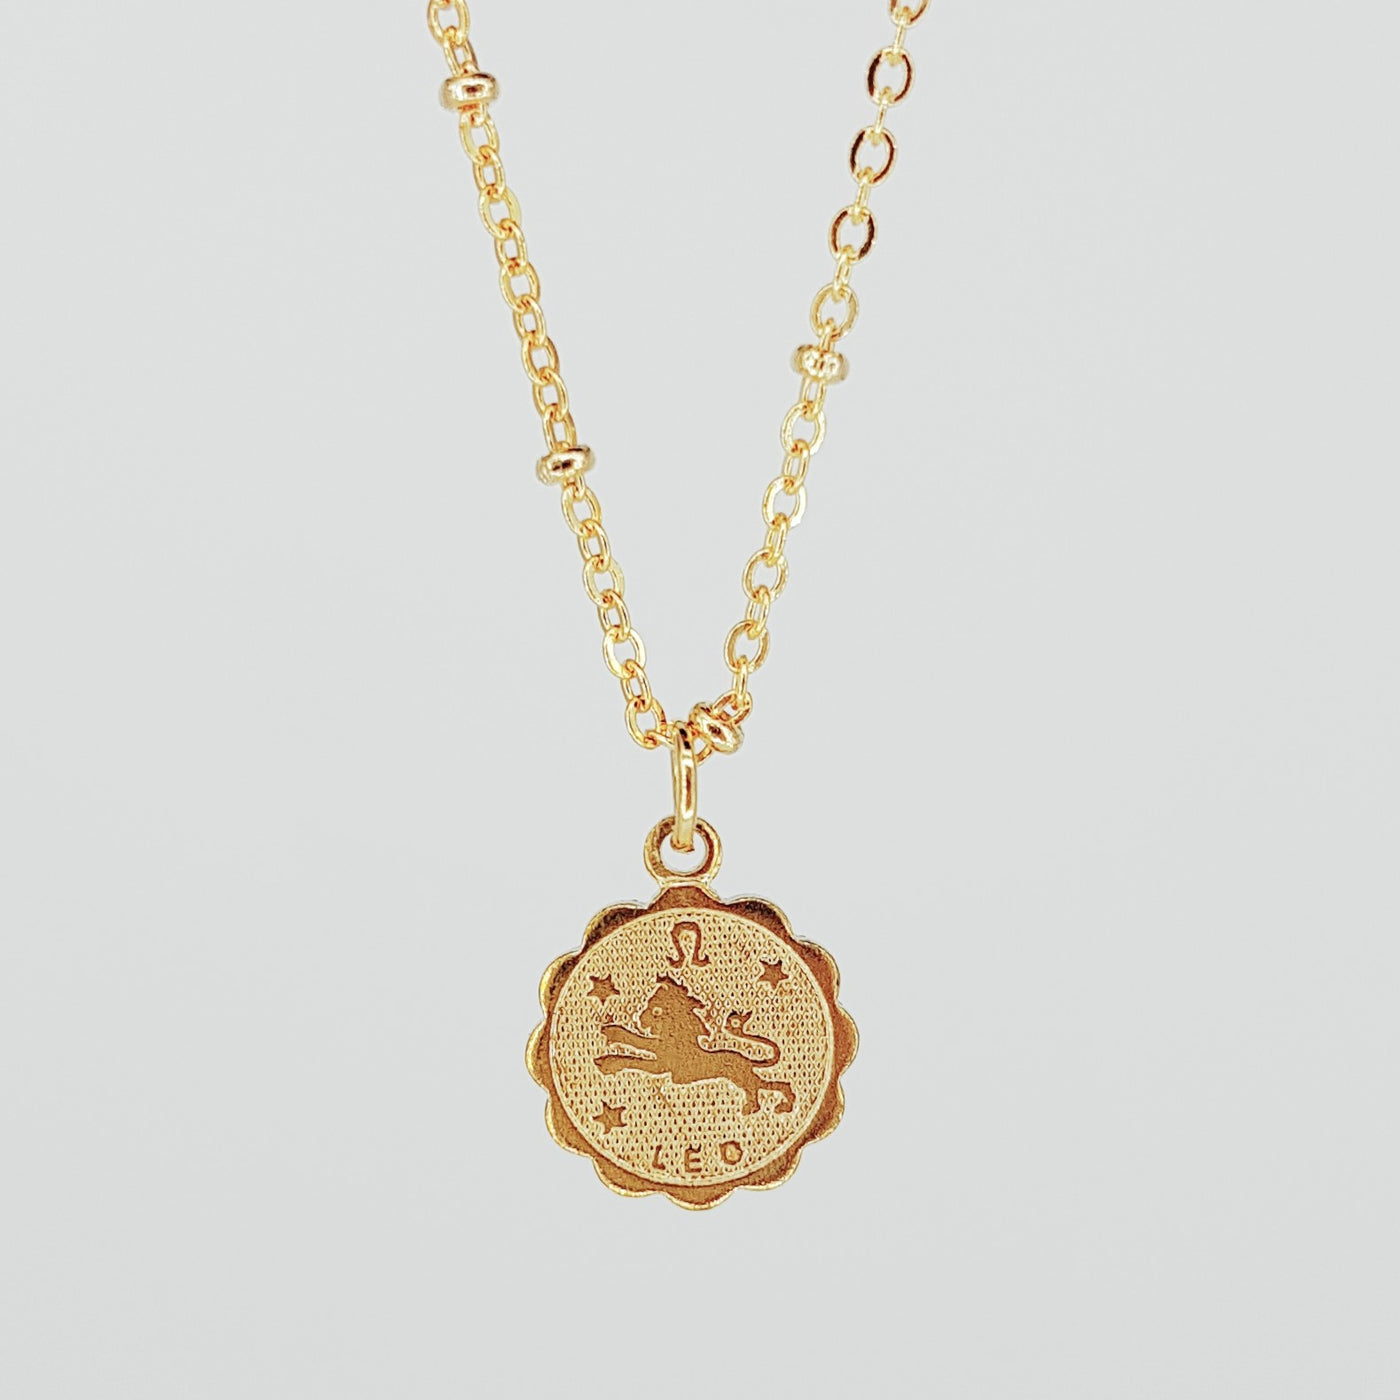 Zodiac Charm Necklace - Leo